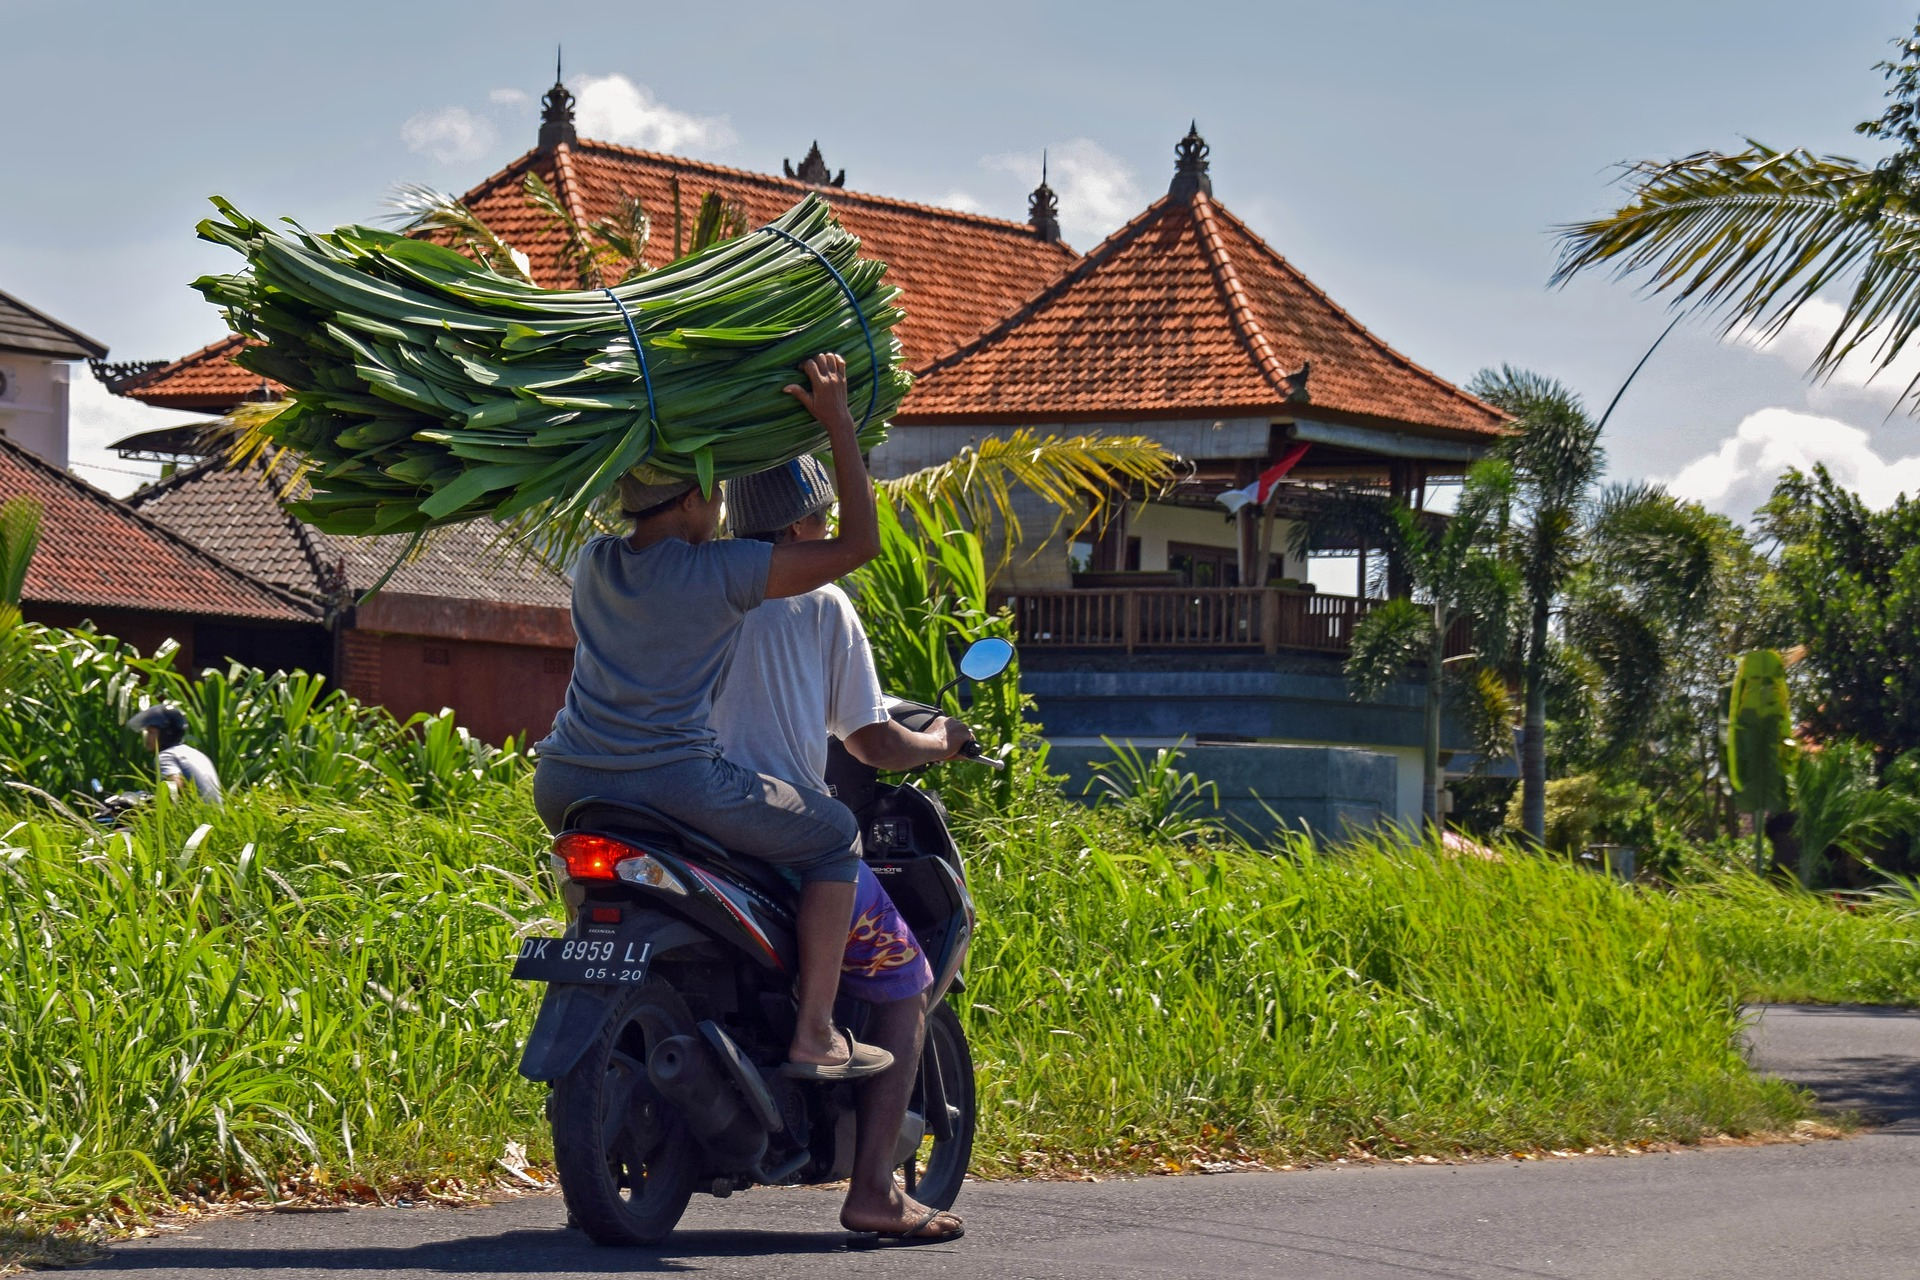 Bali Bike | Luxury Travels | Luxury Travel Blog